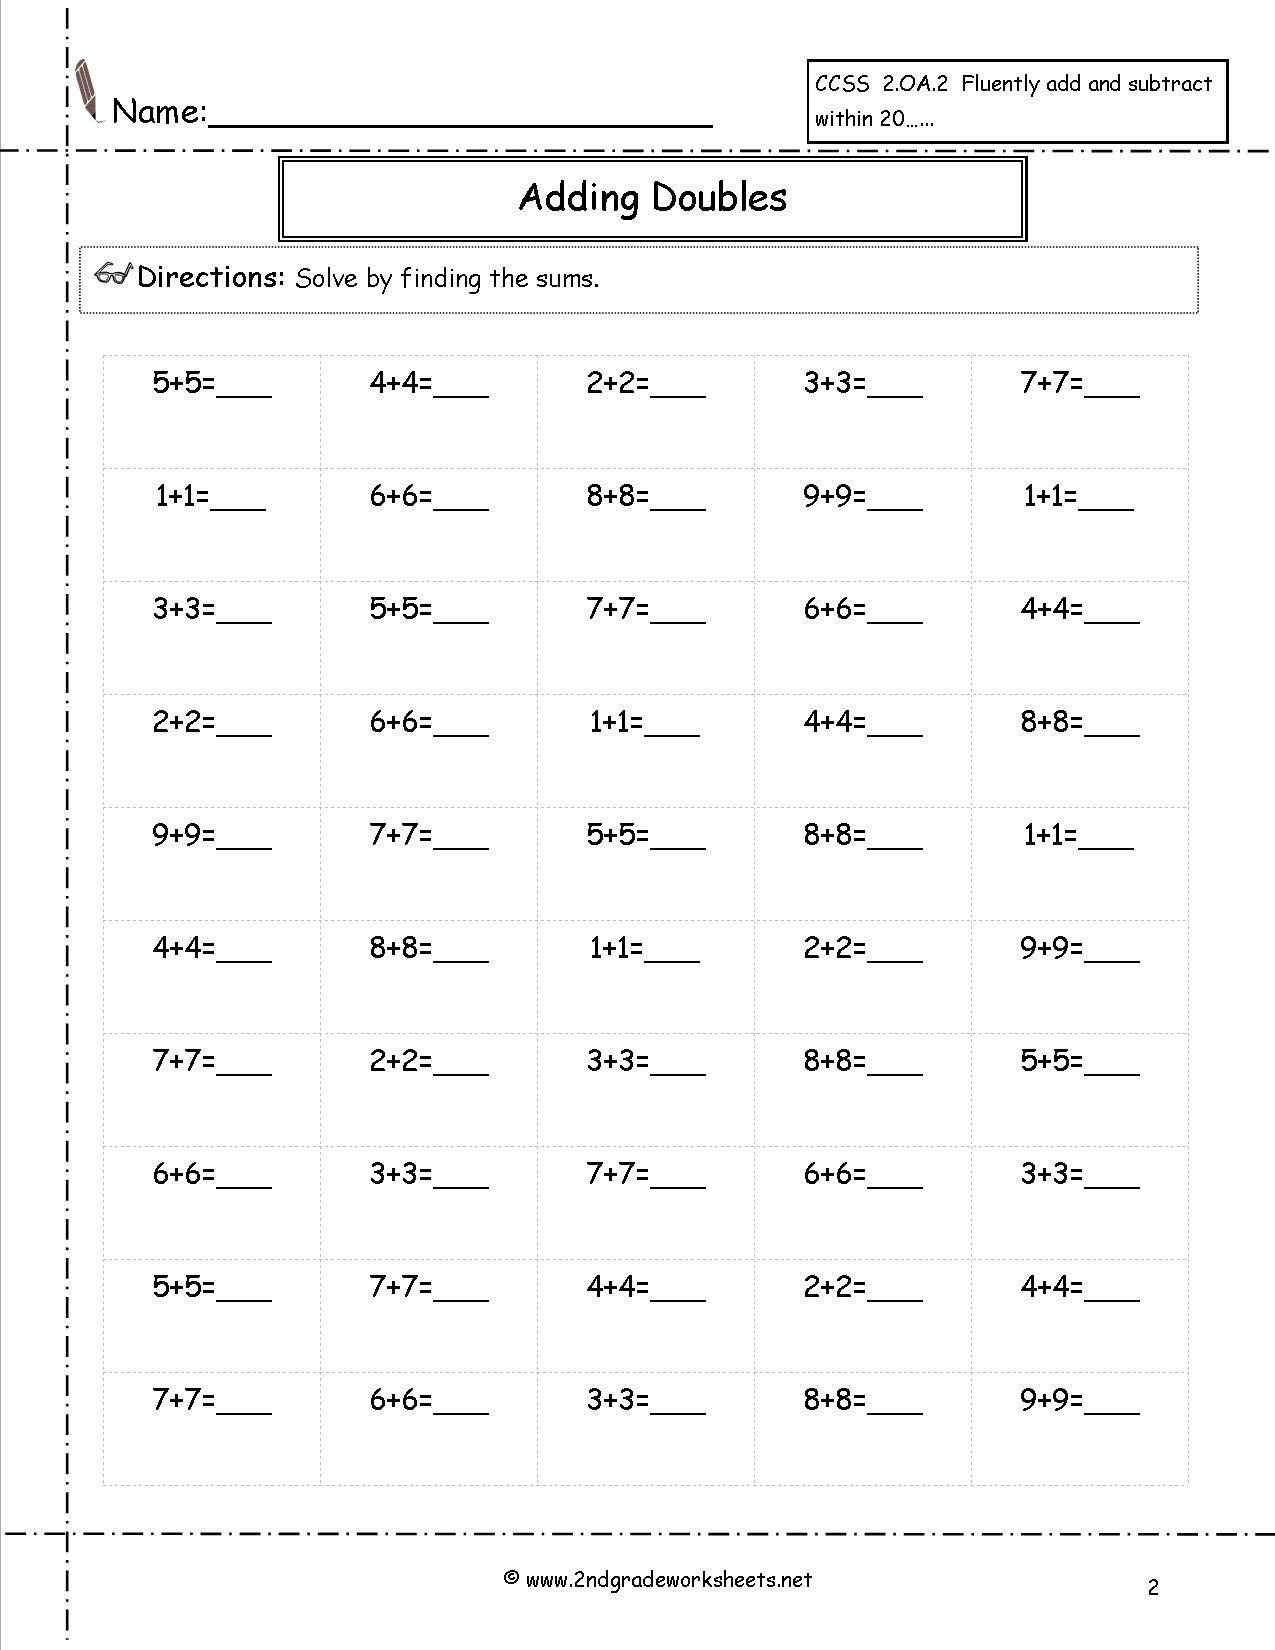 Free Math Worksheets And Printouts - K5 Learning Free Printable Worksheets